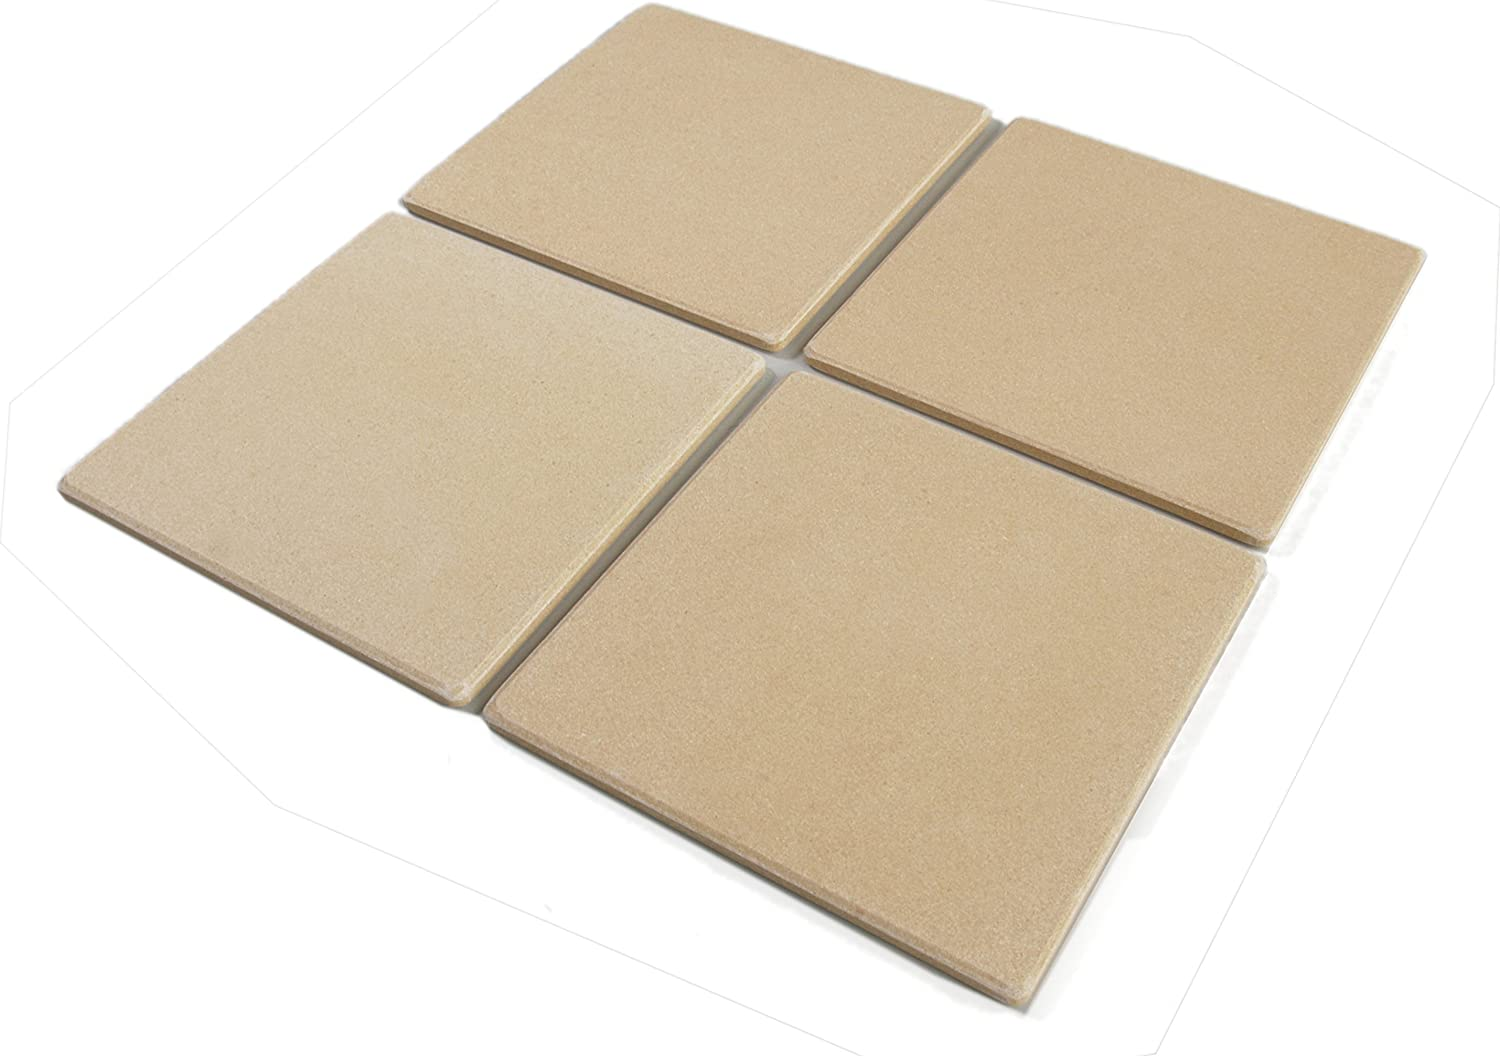 Bialetti Taste of Italy Ceramic Pizza Stone Tile, Set of 4